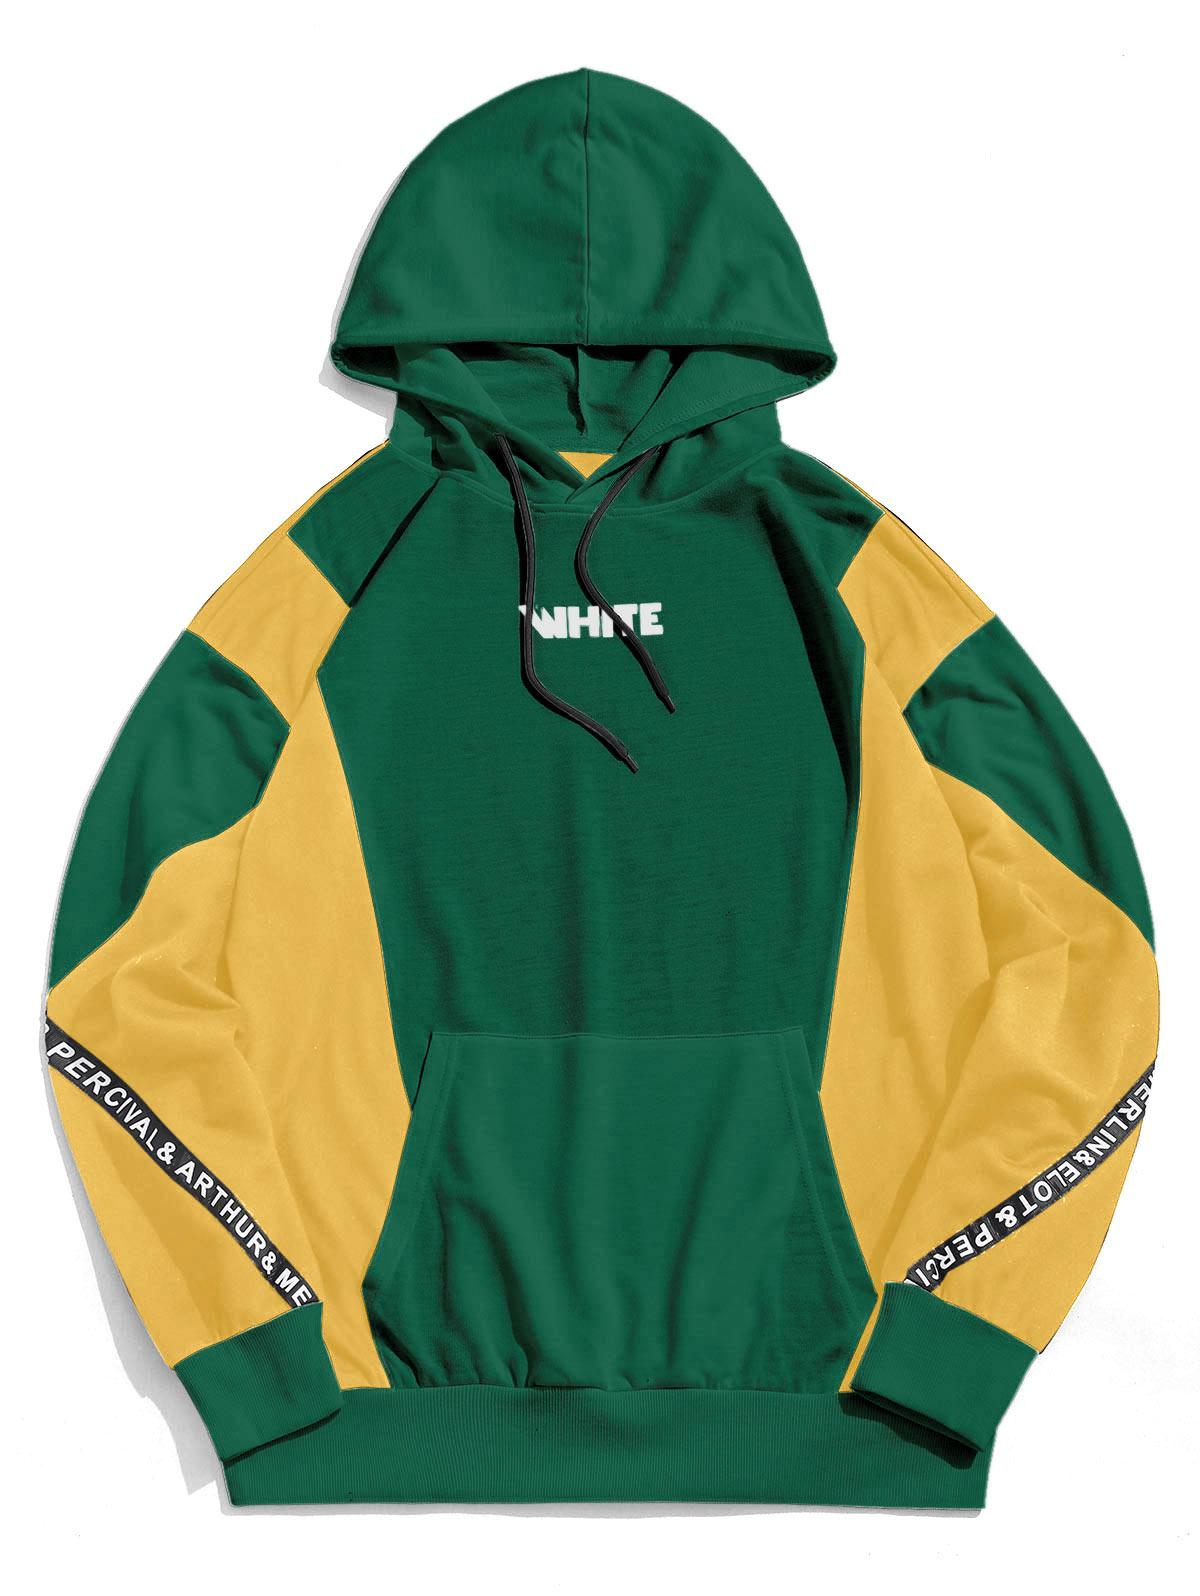 ZAFUL Color Blocking Spliced Letter Graphic Casual Hoodie фото